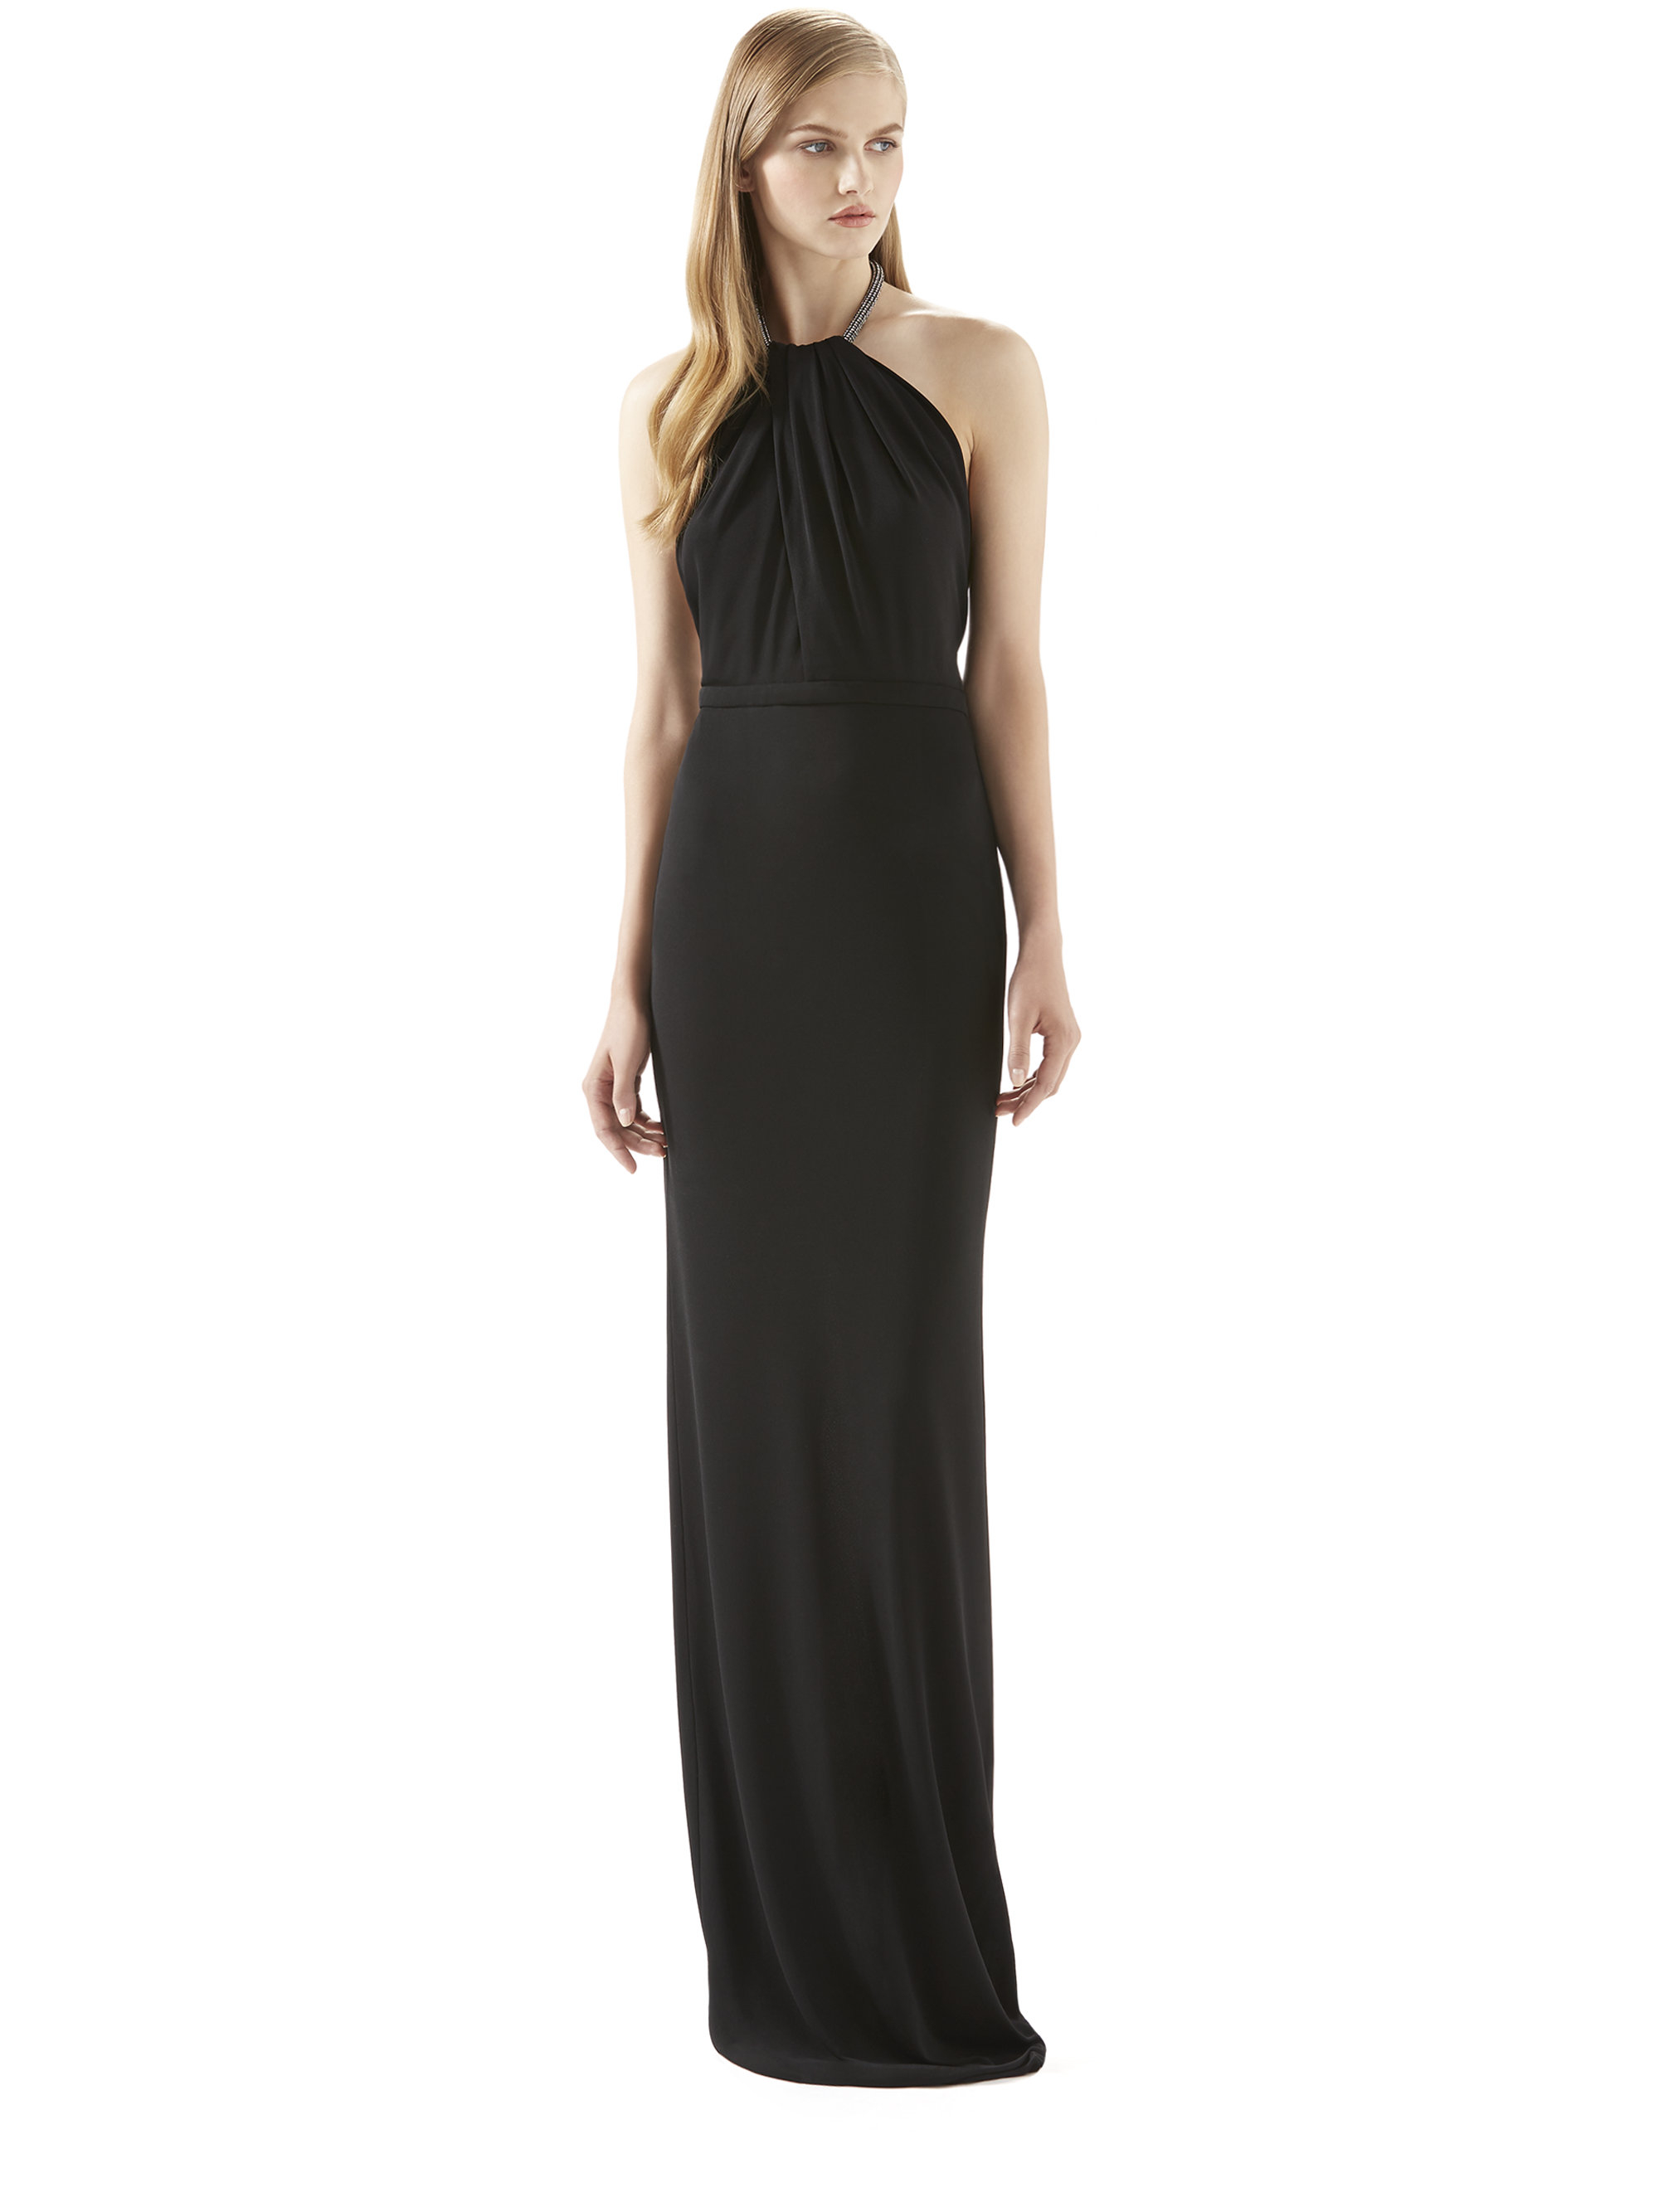 96a46b2f8 Gucci Crystal Halter Black Viscose Jersey Gown in Black - Lyst